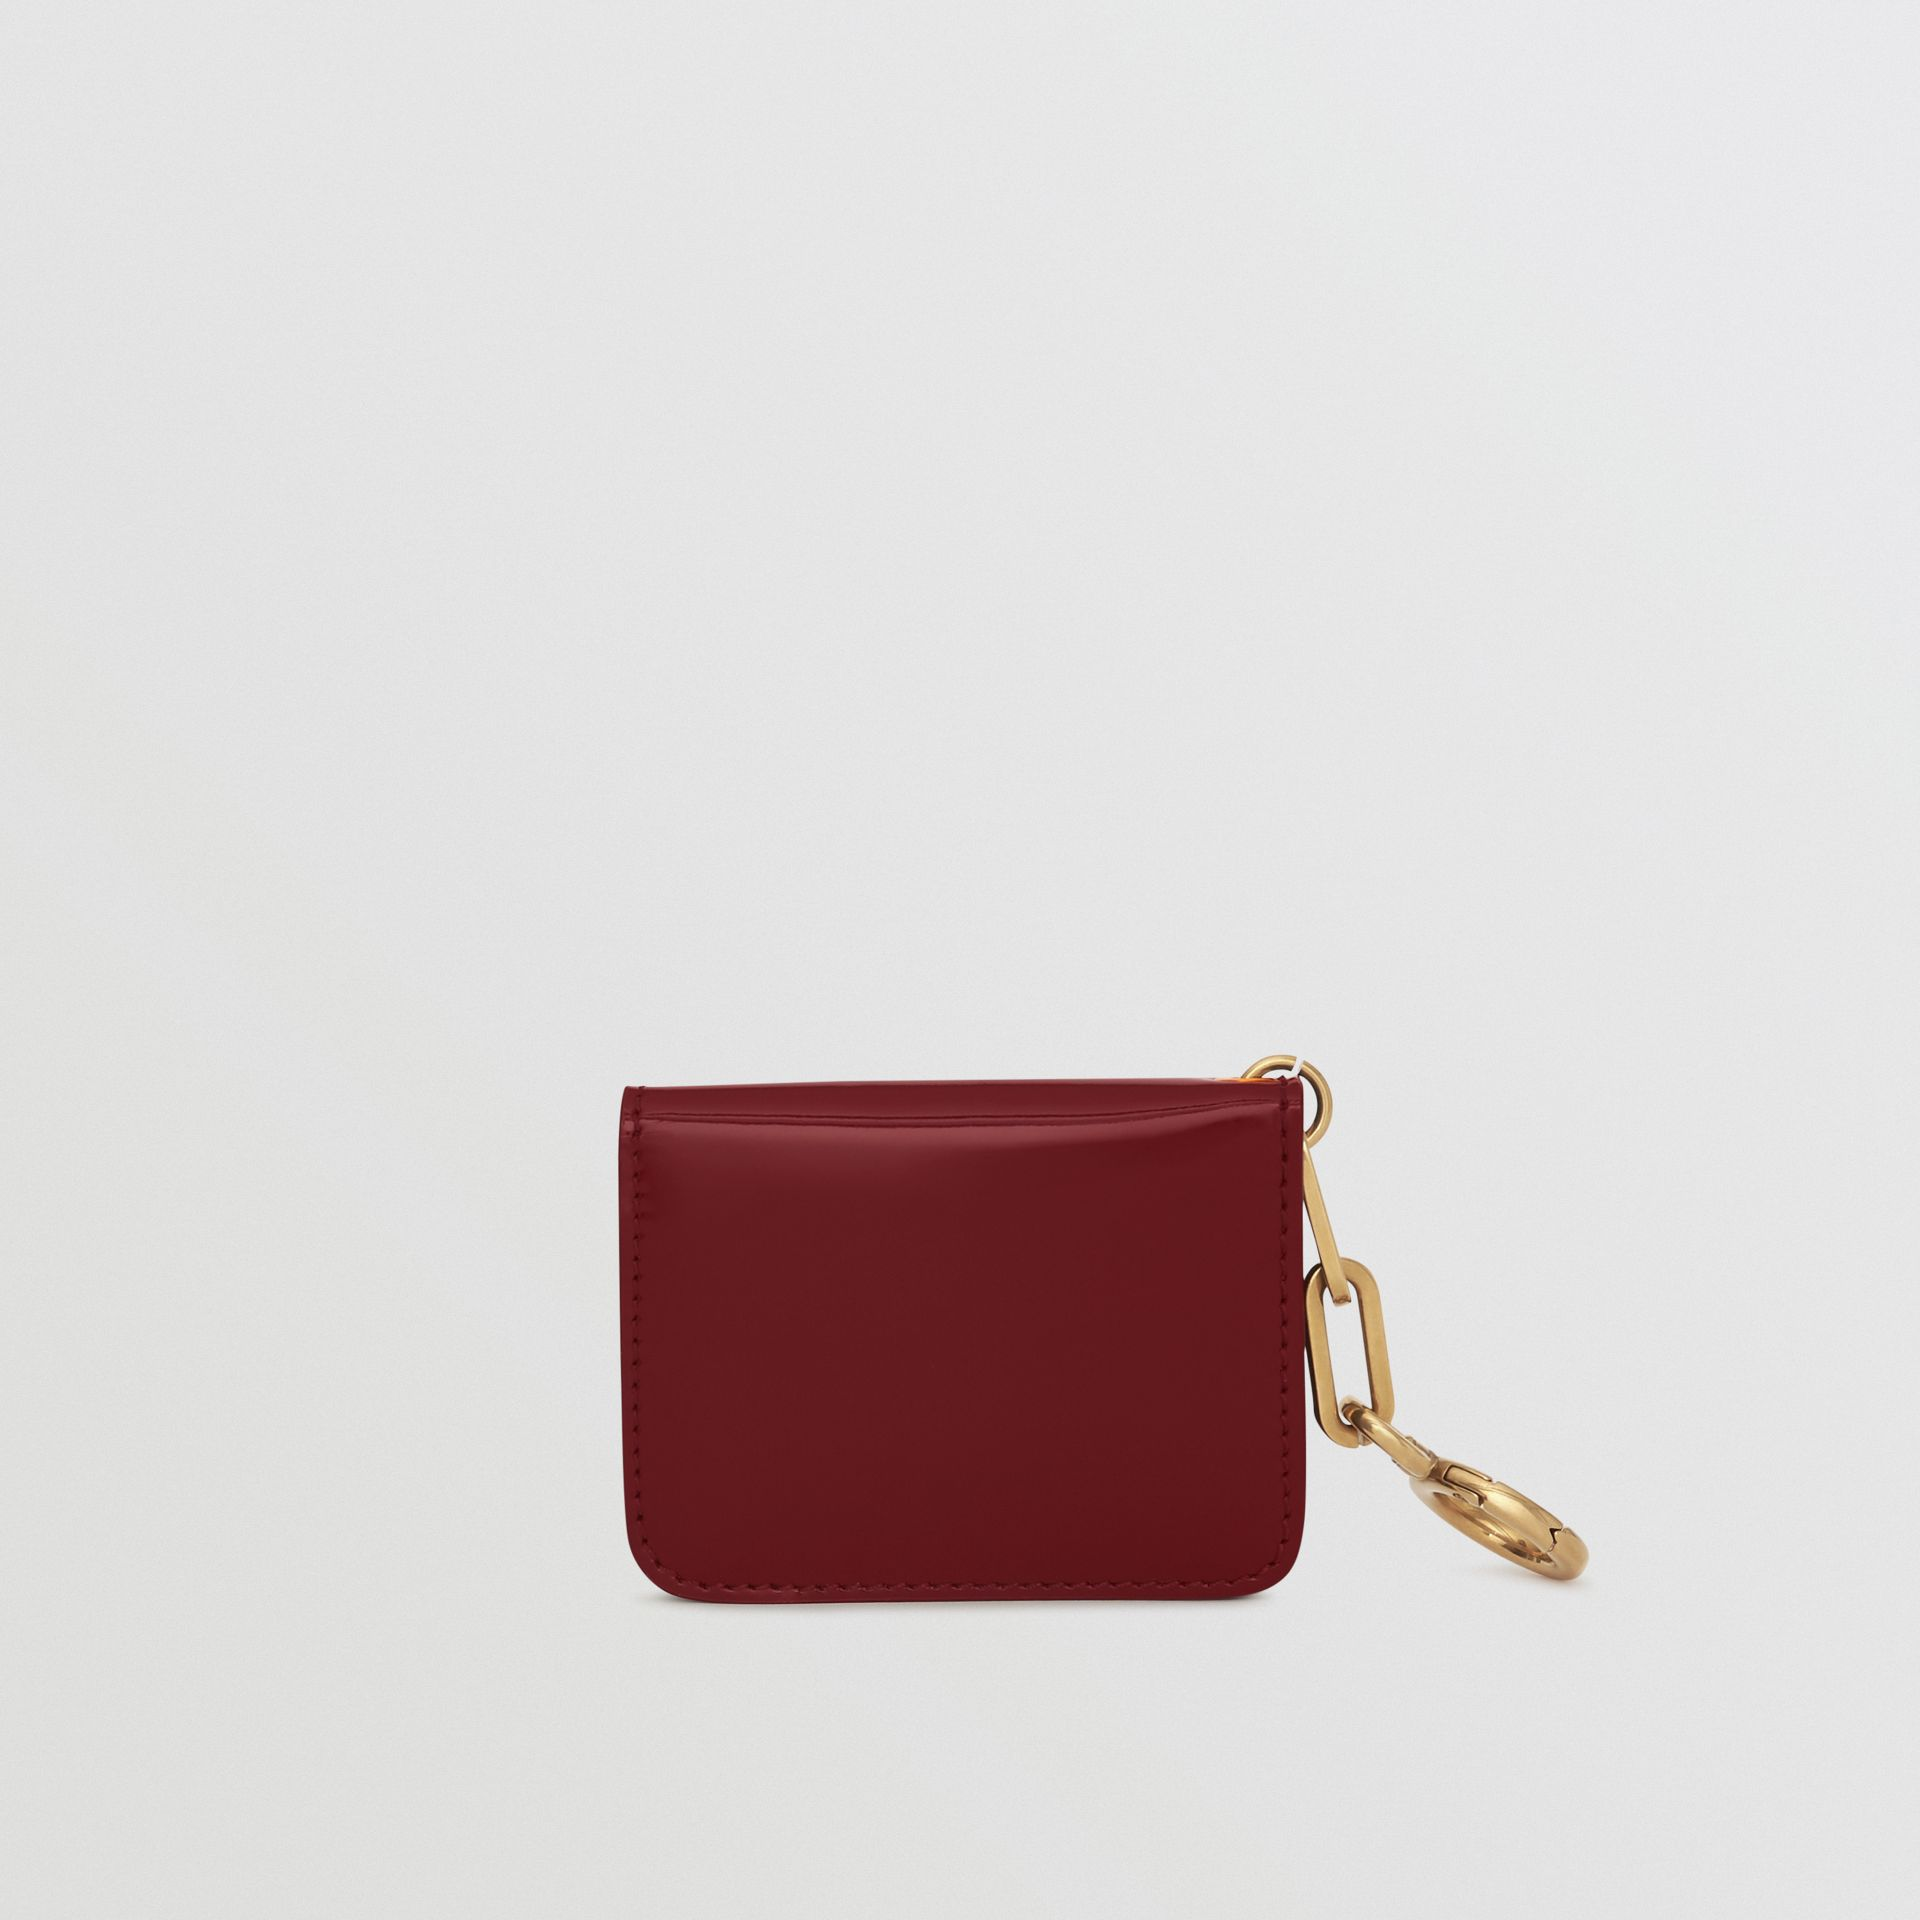 Link Detail Patent Leather ID Card Case Charm in Crimson - Women | Burberry United States - gallery image 5